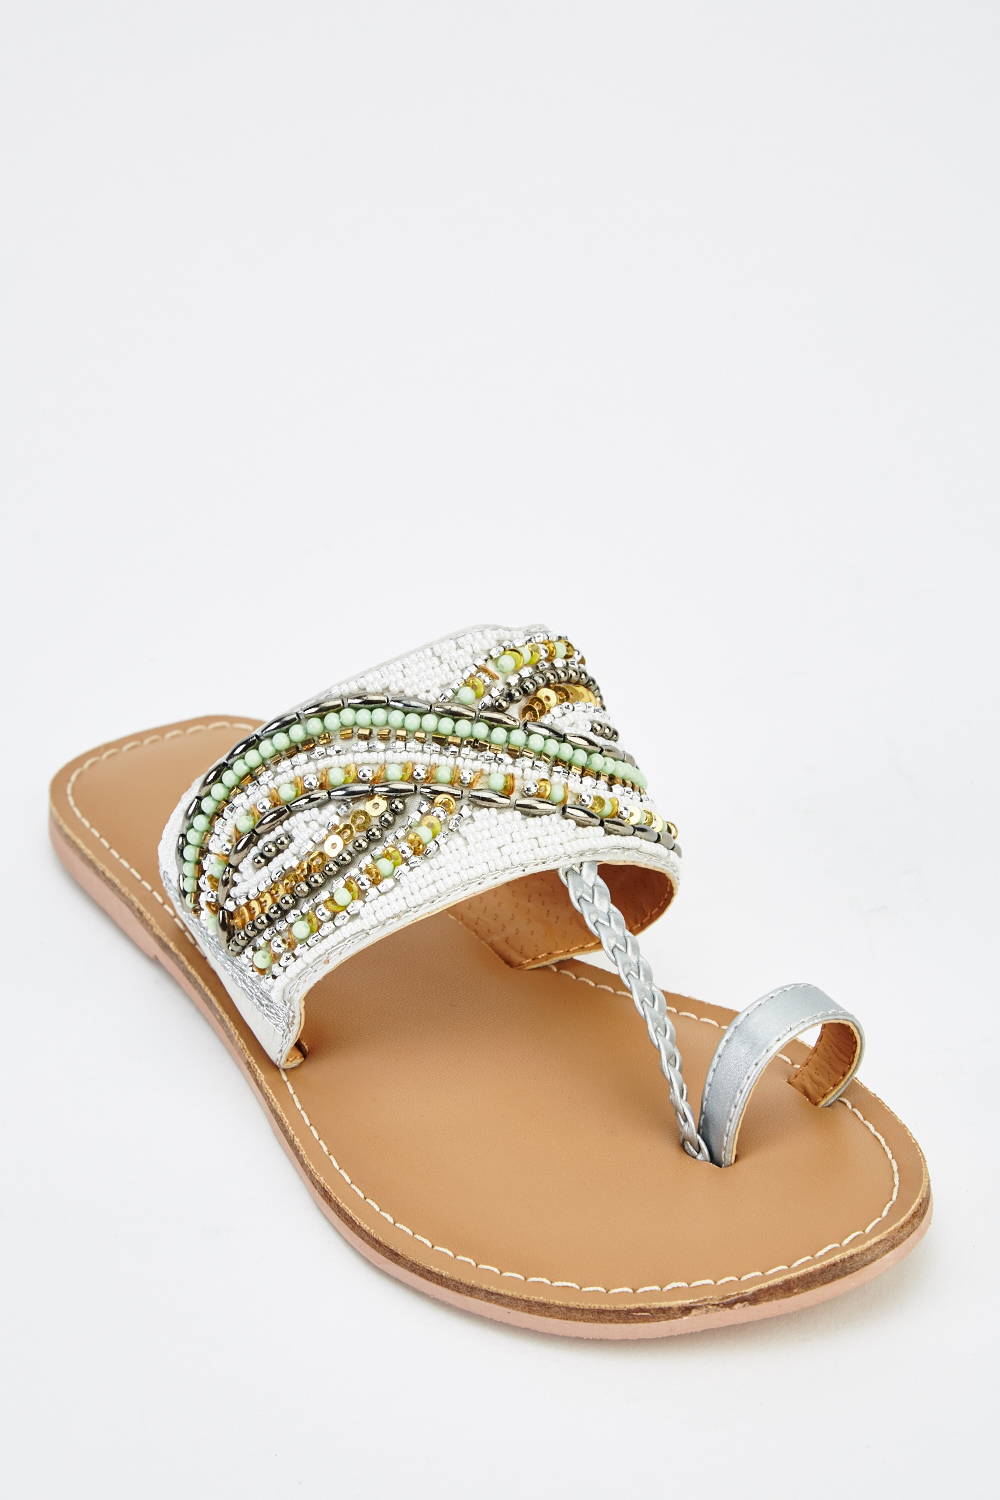 9b4b5d0ea42a9 Embellished Front Metallic Flip Flop Sandals - Just £5